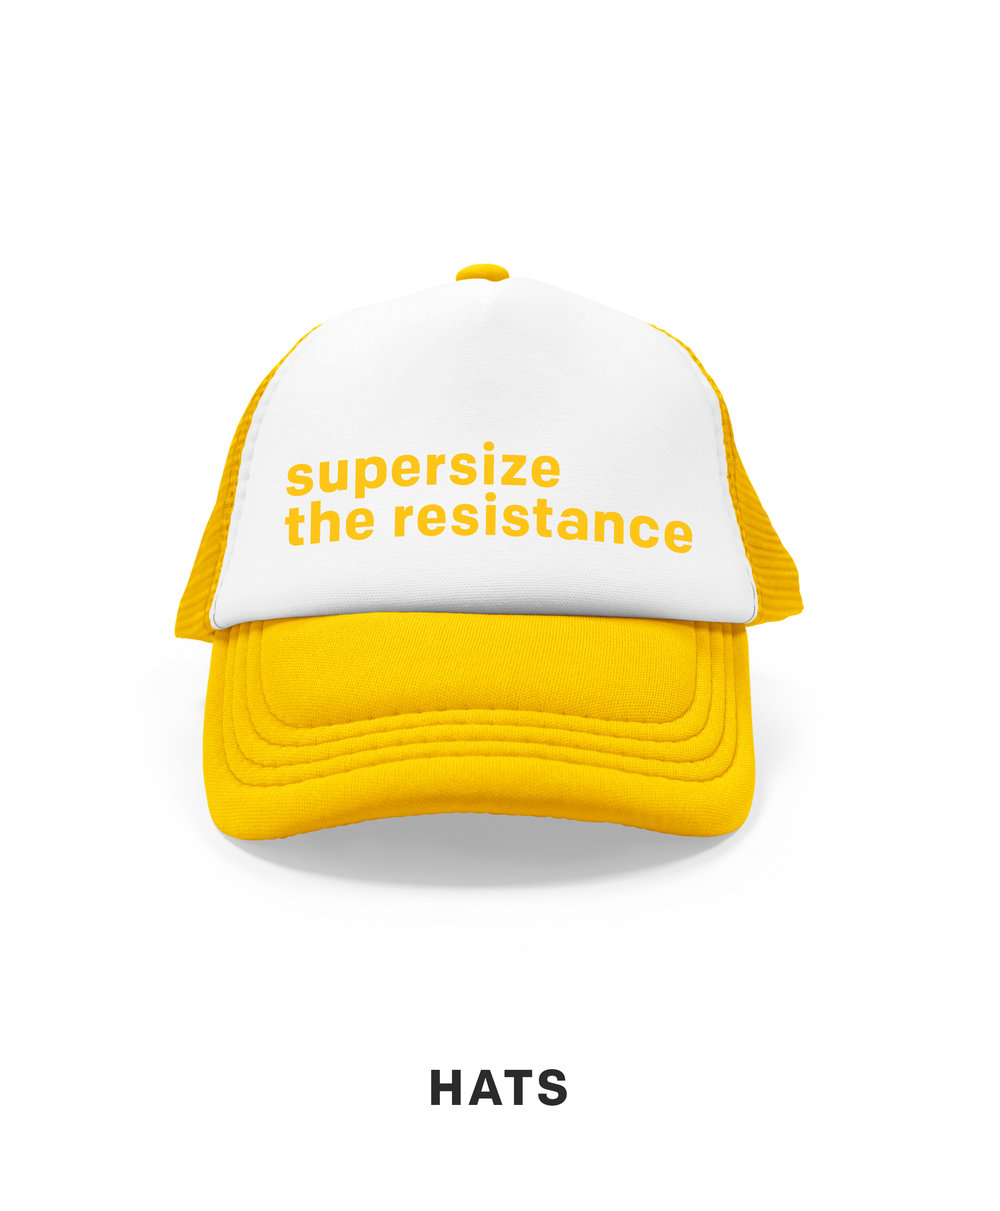 Categories-Hats.jpg